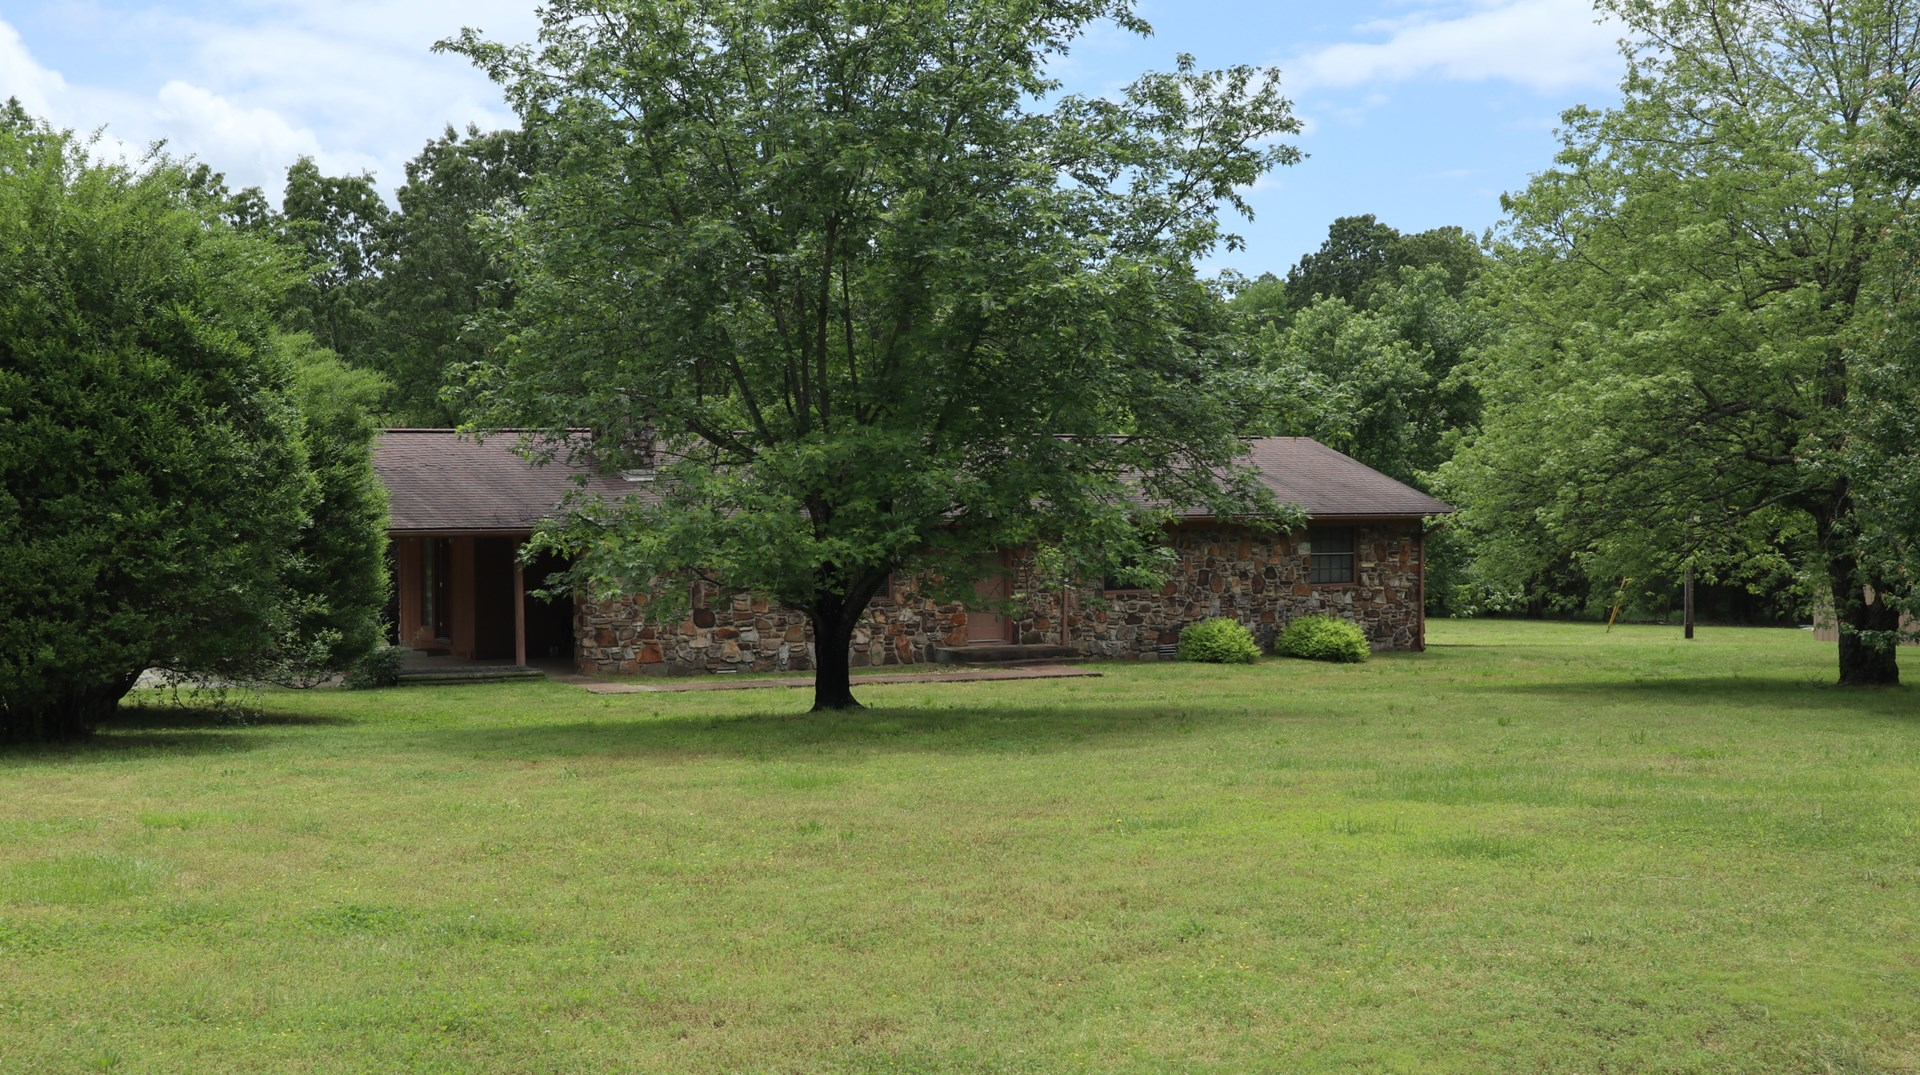 Ozarks Country Home and Hobby Farm for Sale Near Salem AR